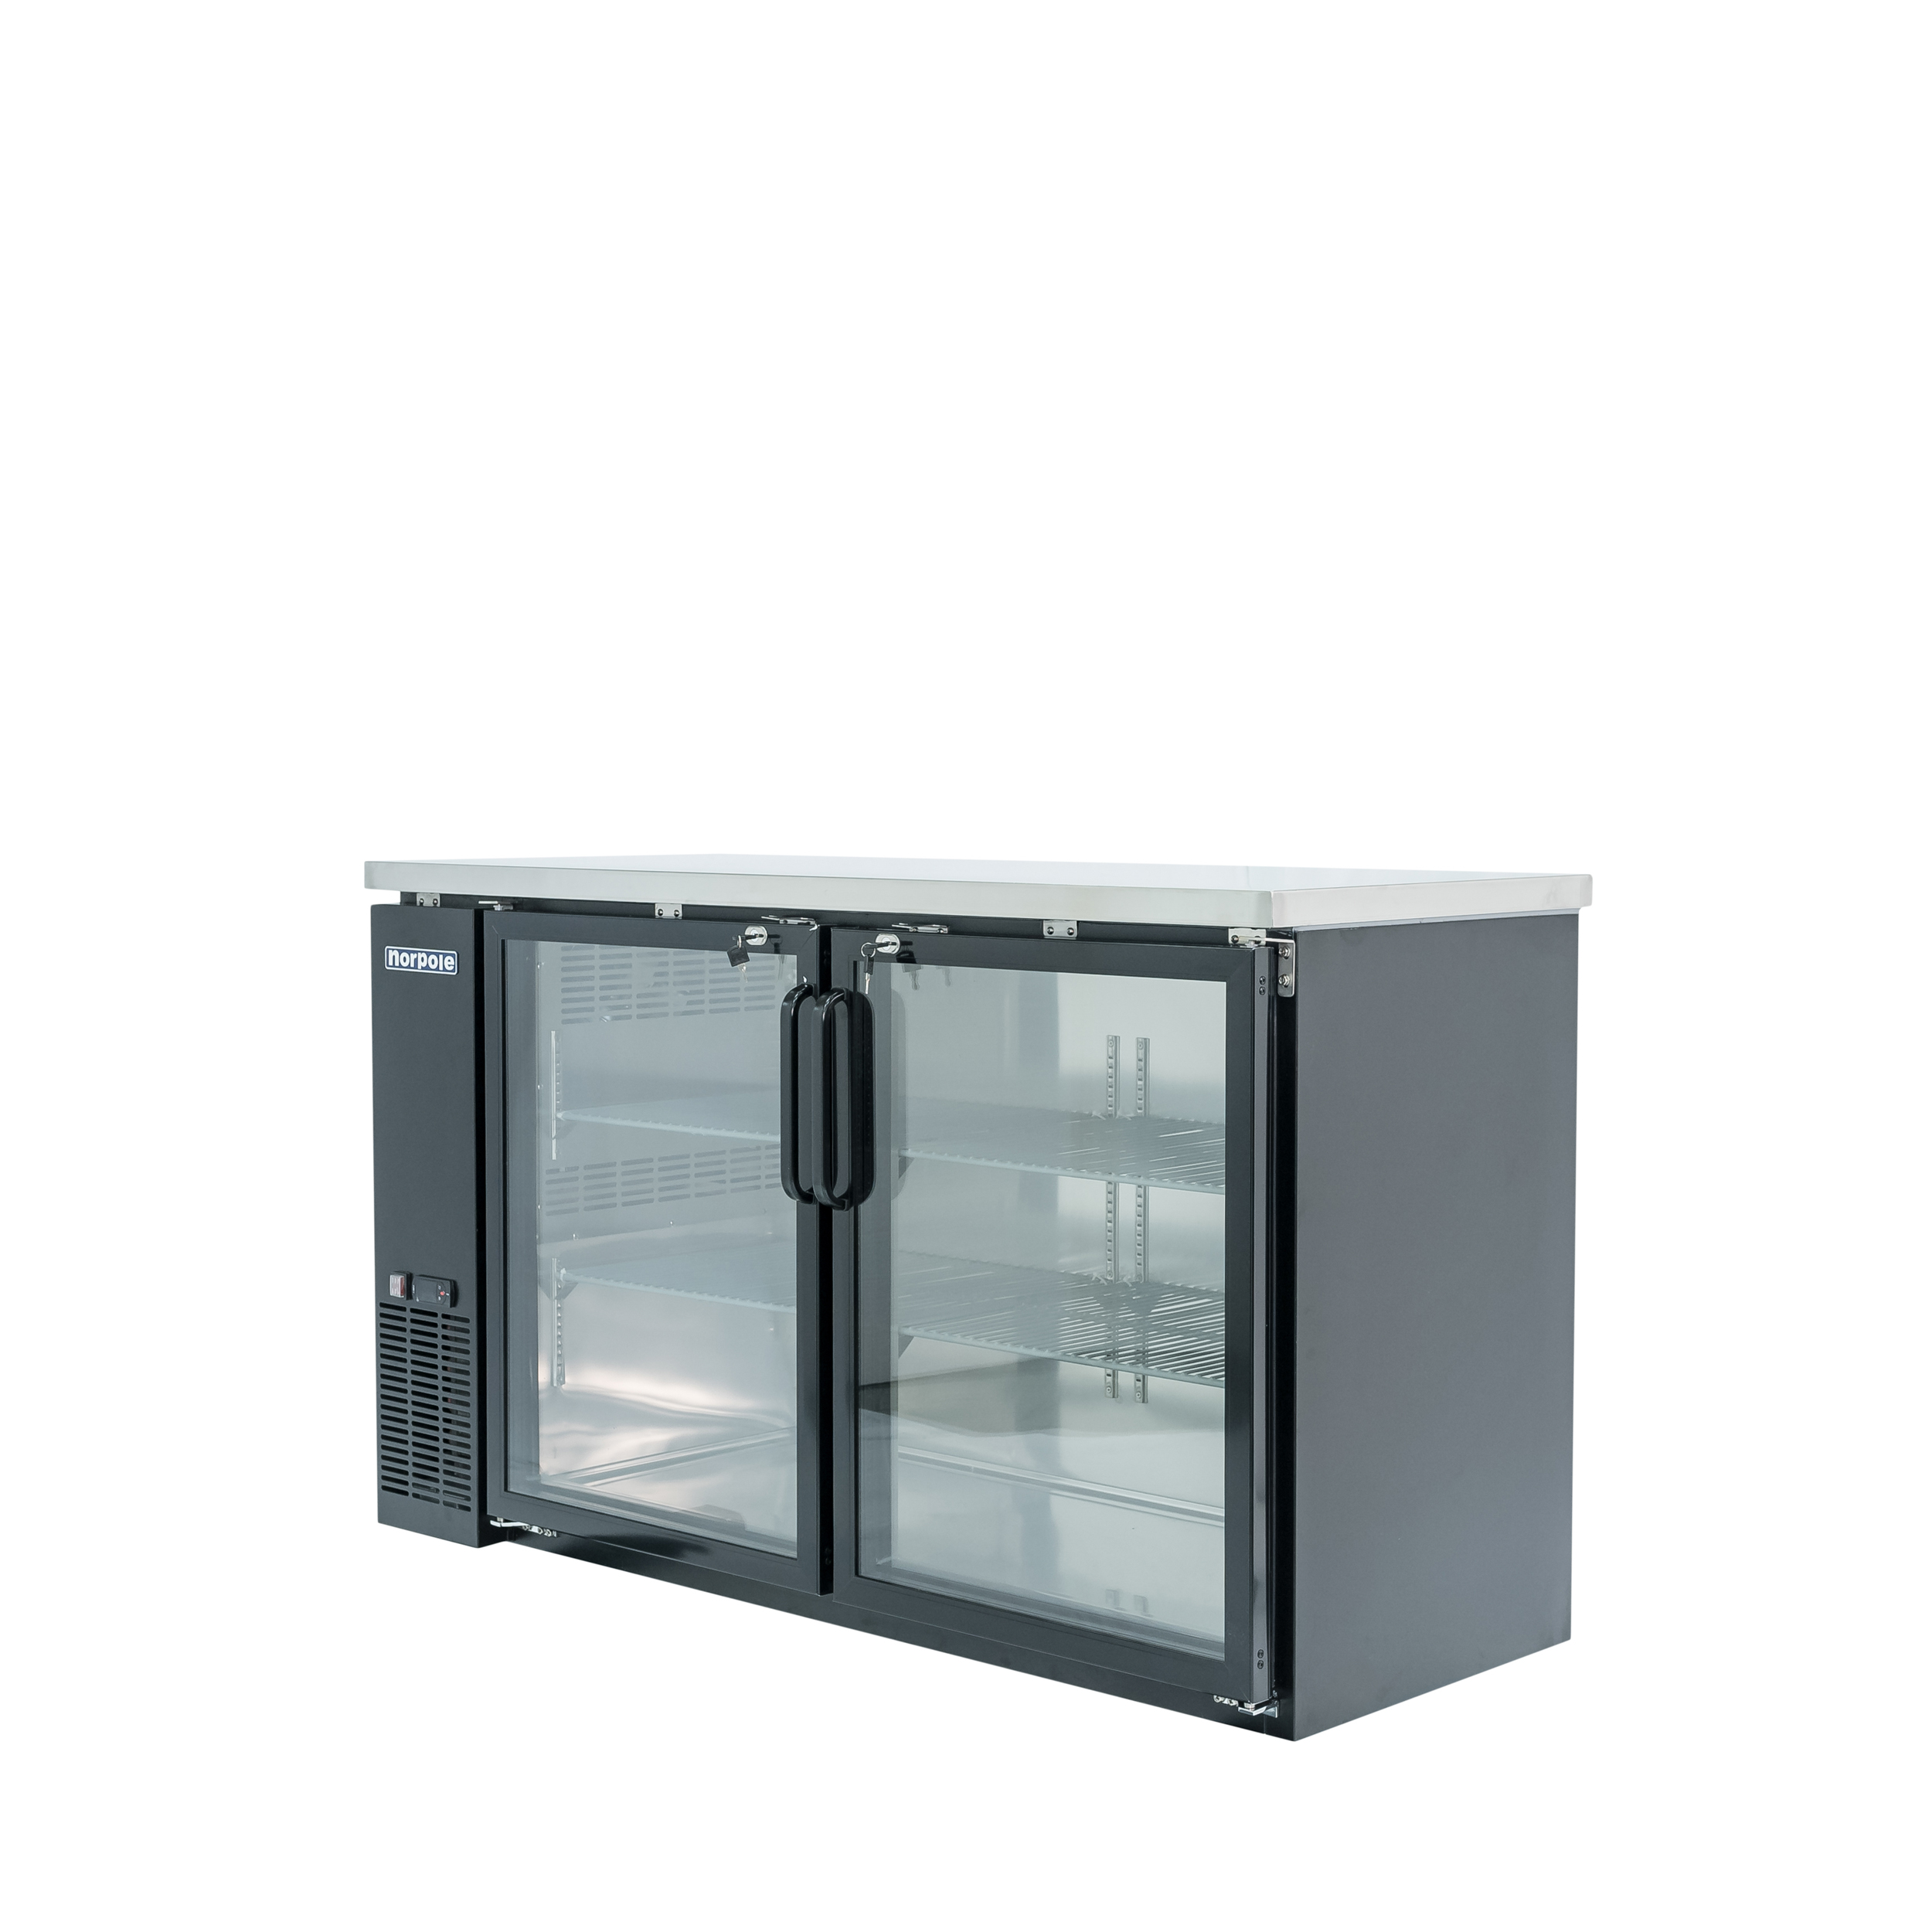 Led Light Fixtures For Walk In Cooler: Norpole NPGB-60 60 IN 2 Glass Door Back Bar Cooler-LED